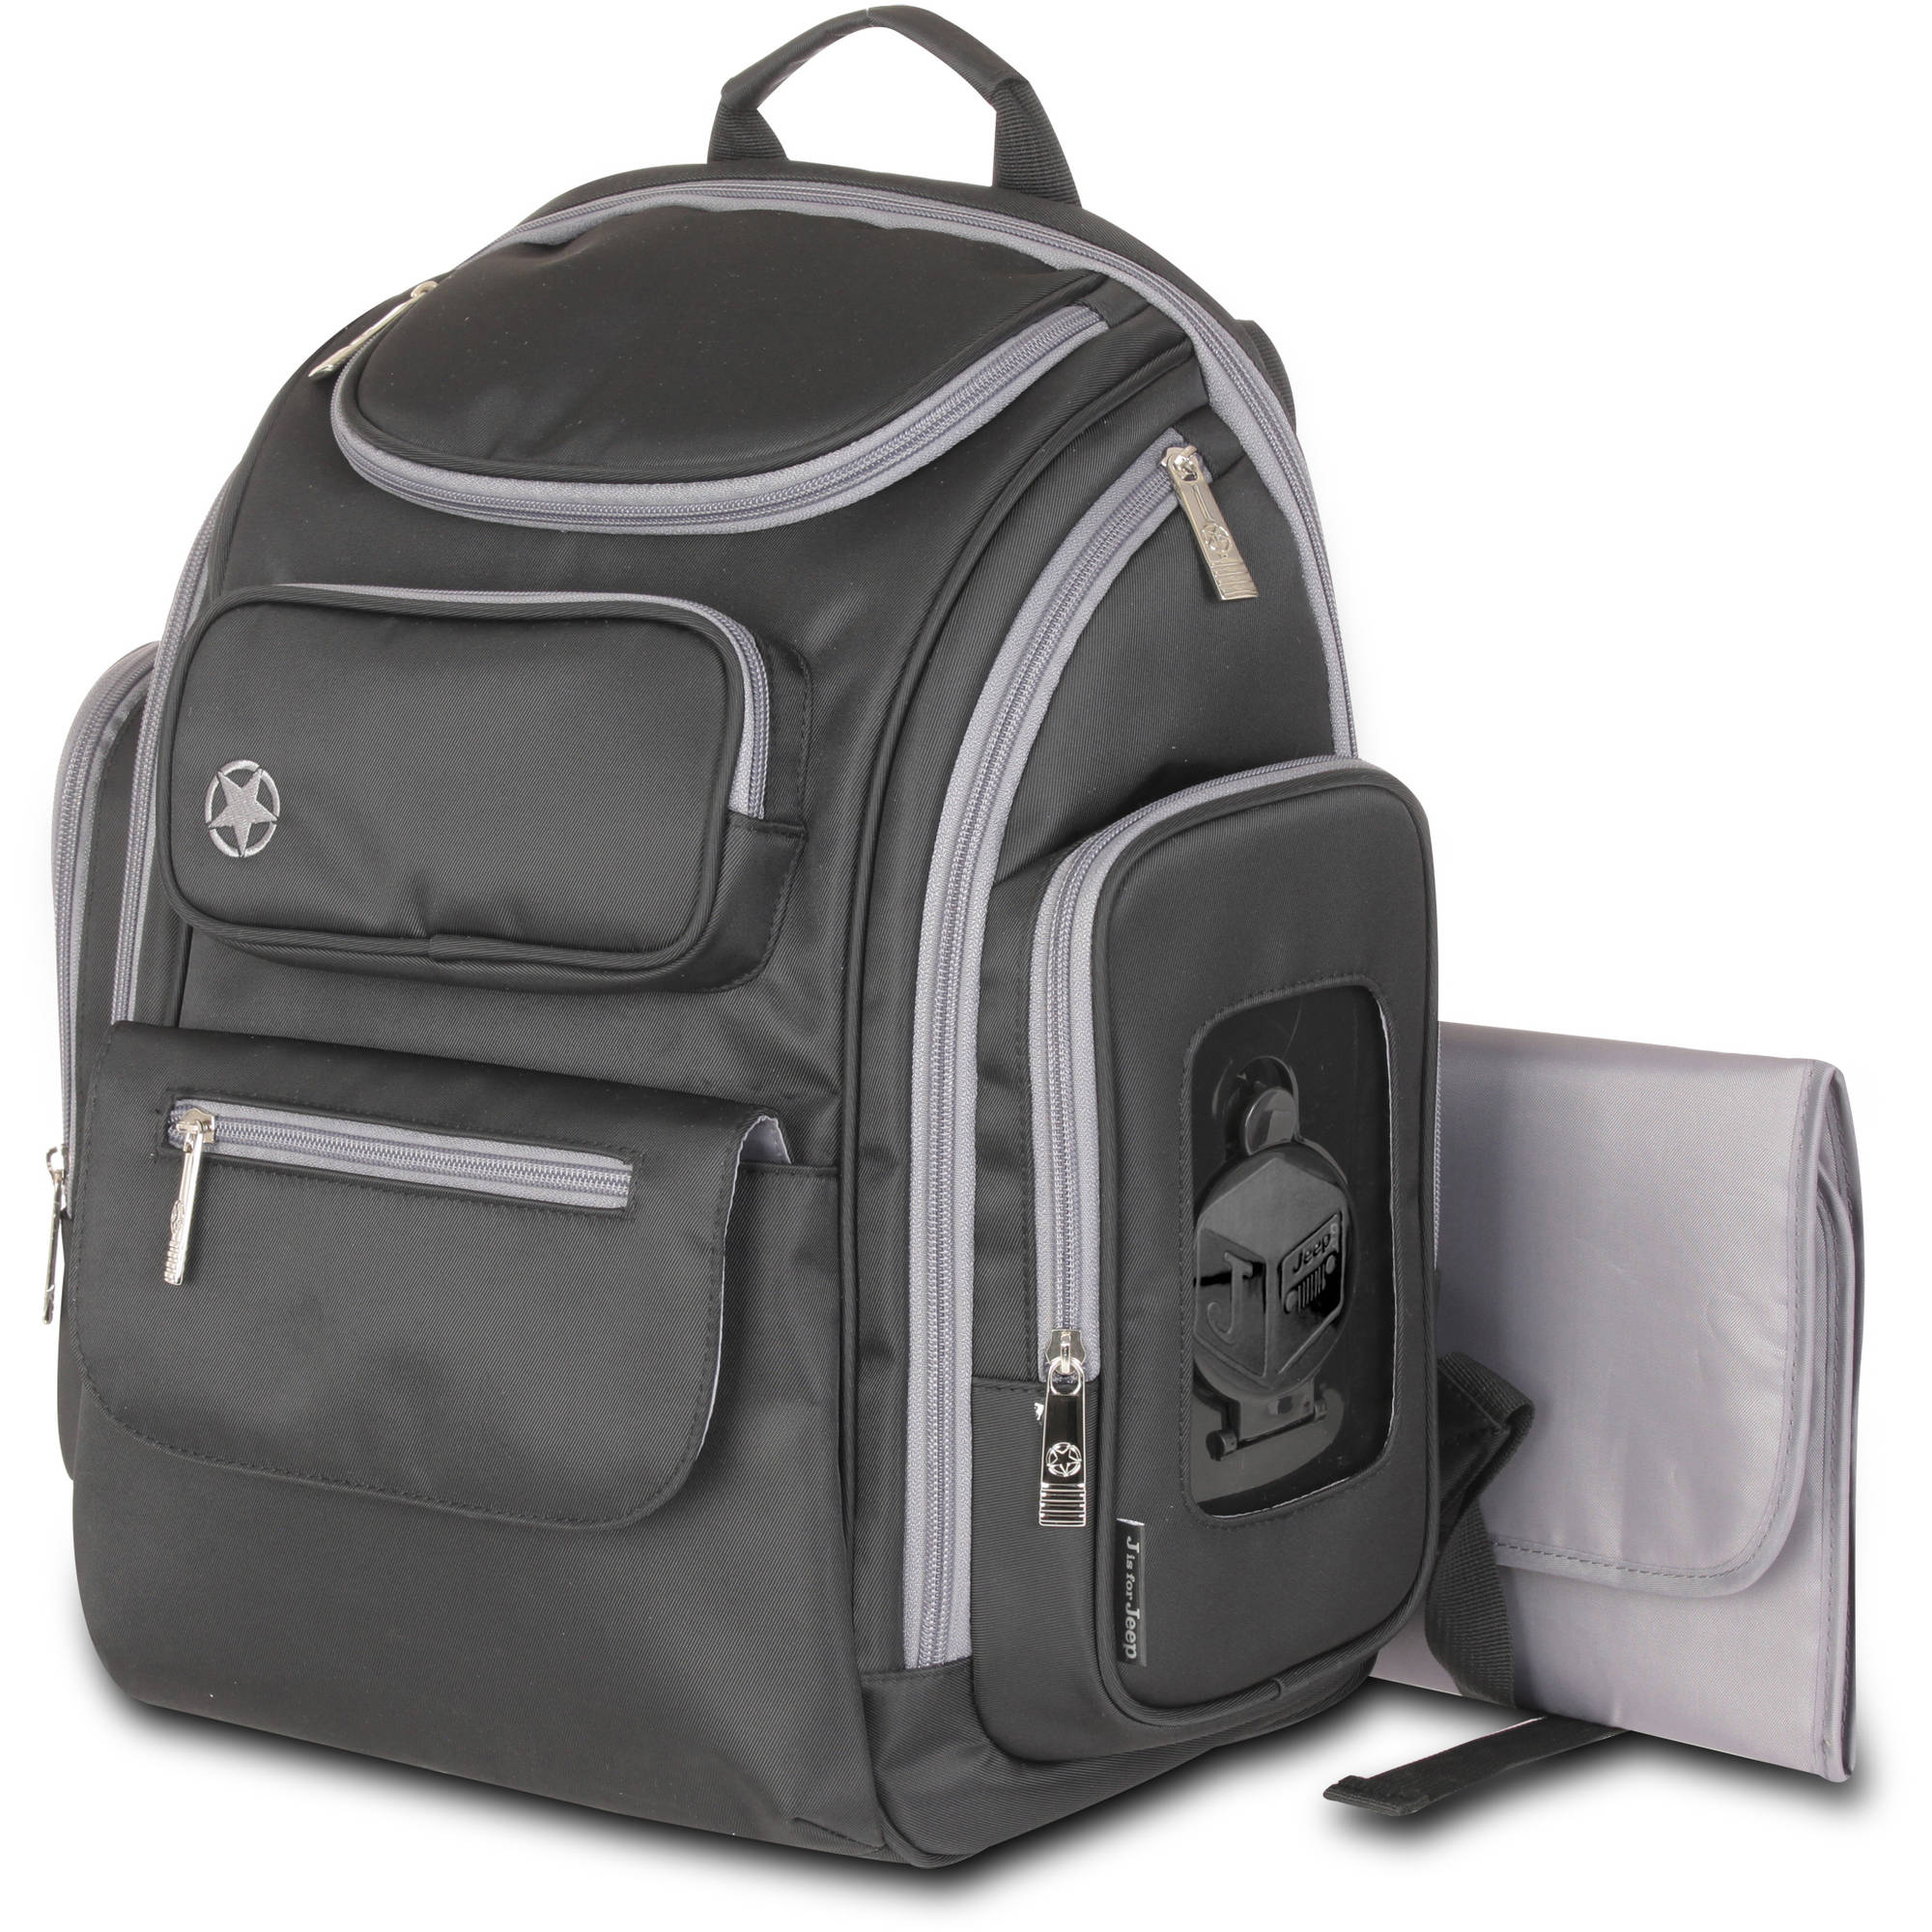 Jeep Perfect Pockets Backpack Diaper Bag, Black/Gray